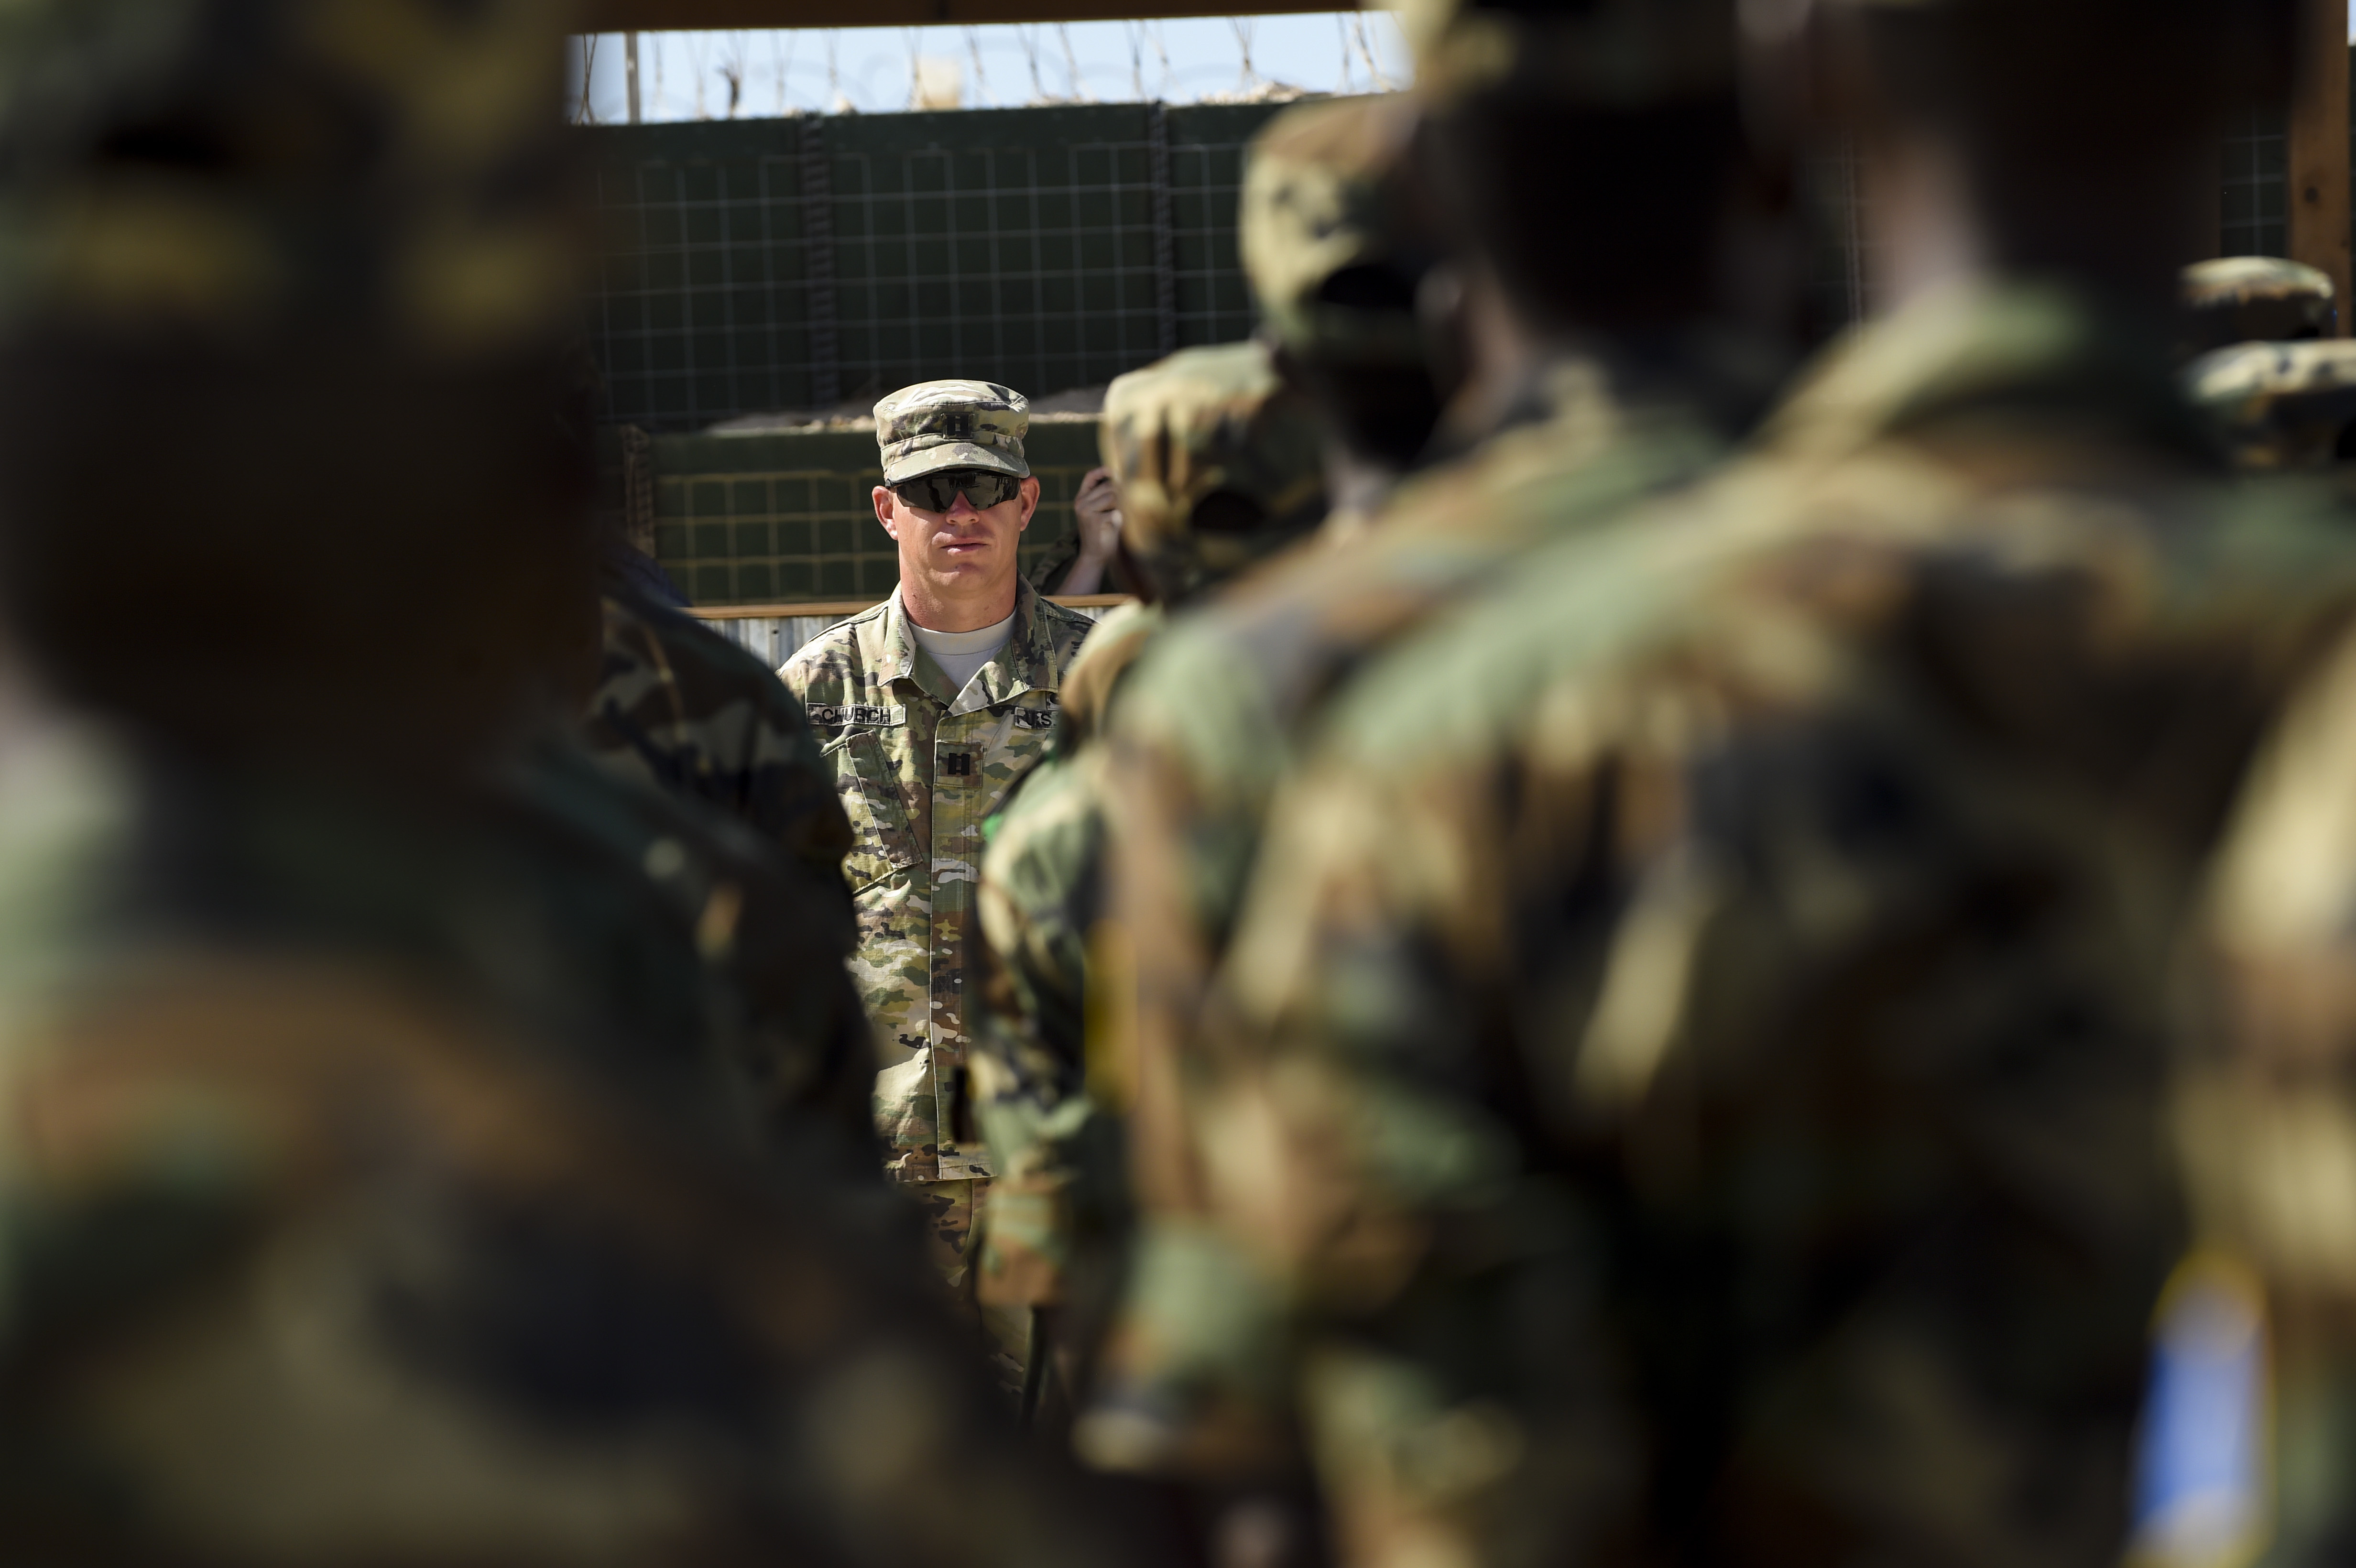 U.S. Army Capt. Seth Church with the 101st Airborne Division stands in front of a military formations of Somali National Army soldiers during a graduation ceremony May 24, 2017, in Mogadishu, Somalia. Church was one of five trainers the U.S. sent at the request of the Federal Government of Somalia to train its soldiers on logistics. (U.S. Air Force photo by Staff Sgt. Nicholas M. Byers)